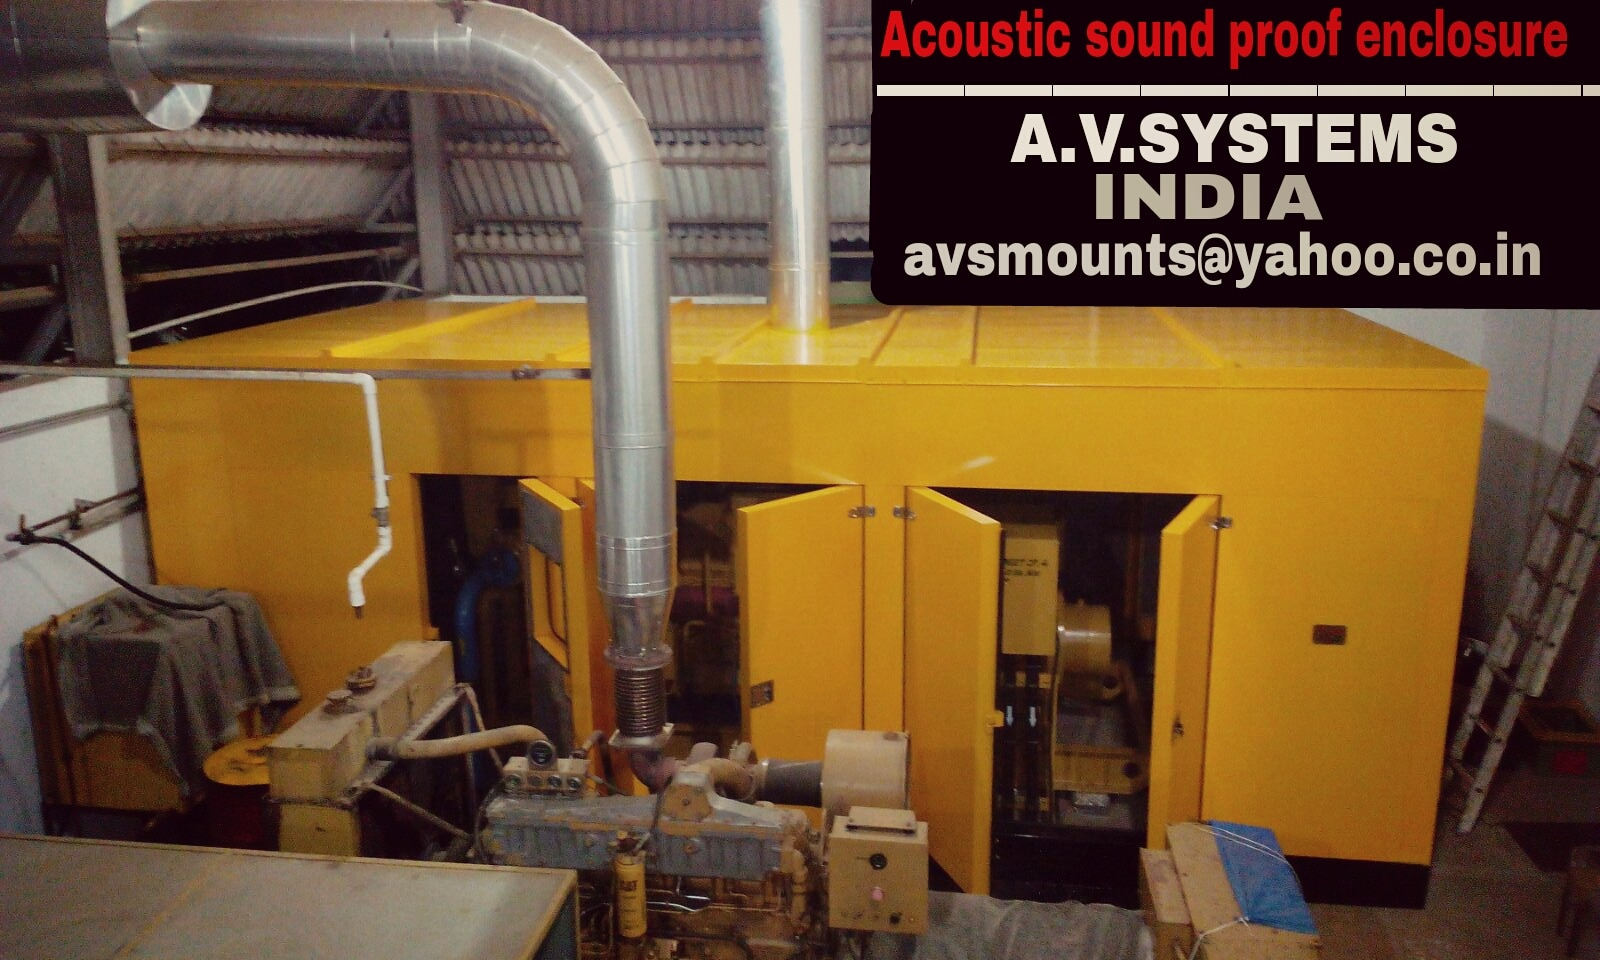 Acoustic Sound proof Enclosure Being a fast-moving organization, we are highly instrumental in providing Sound Proof Acoustic Enclosure. The offered product is known for their high-quality and superior engineering finish. Features: Application specific design Cost effective High functionality Specification: Modular construction, CR-steel sheet, glass wool, Powder coating, easy assembly and dismantling Insulation infill –Glasswool, PU foam, Polymeric membrane, cork.   Upto 25 dbA-sound reduction Conforms to CPCB, and EMS specification	 Acoustic Sound proof Enclosure in Coimbatore Acoustic Sound proof Enclosure in Chennai Acoustic Sound proof Enclosure in Tiruppur Acoustic Sound proof Enclosure in Cochin